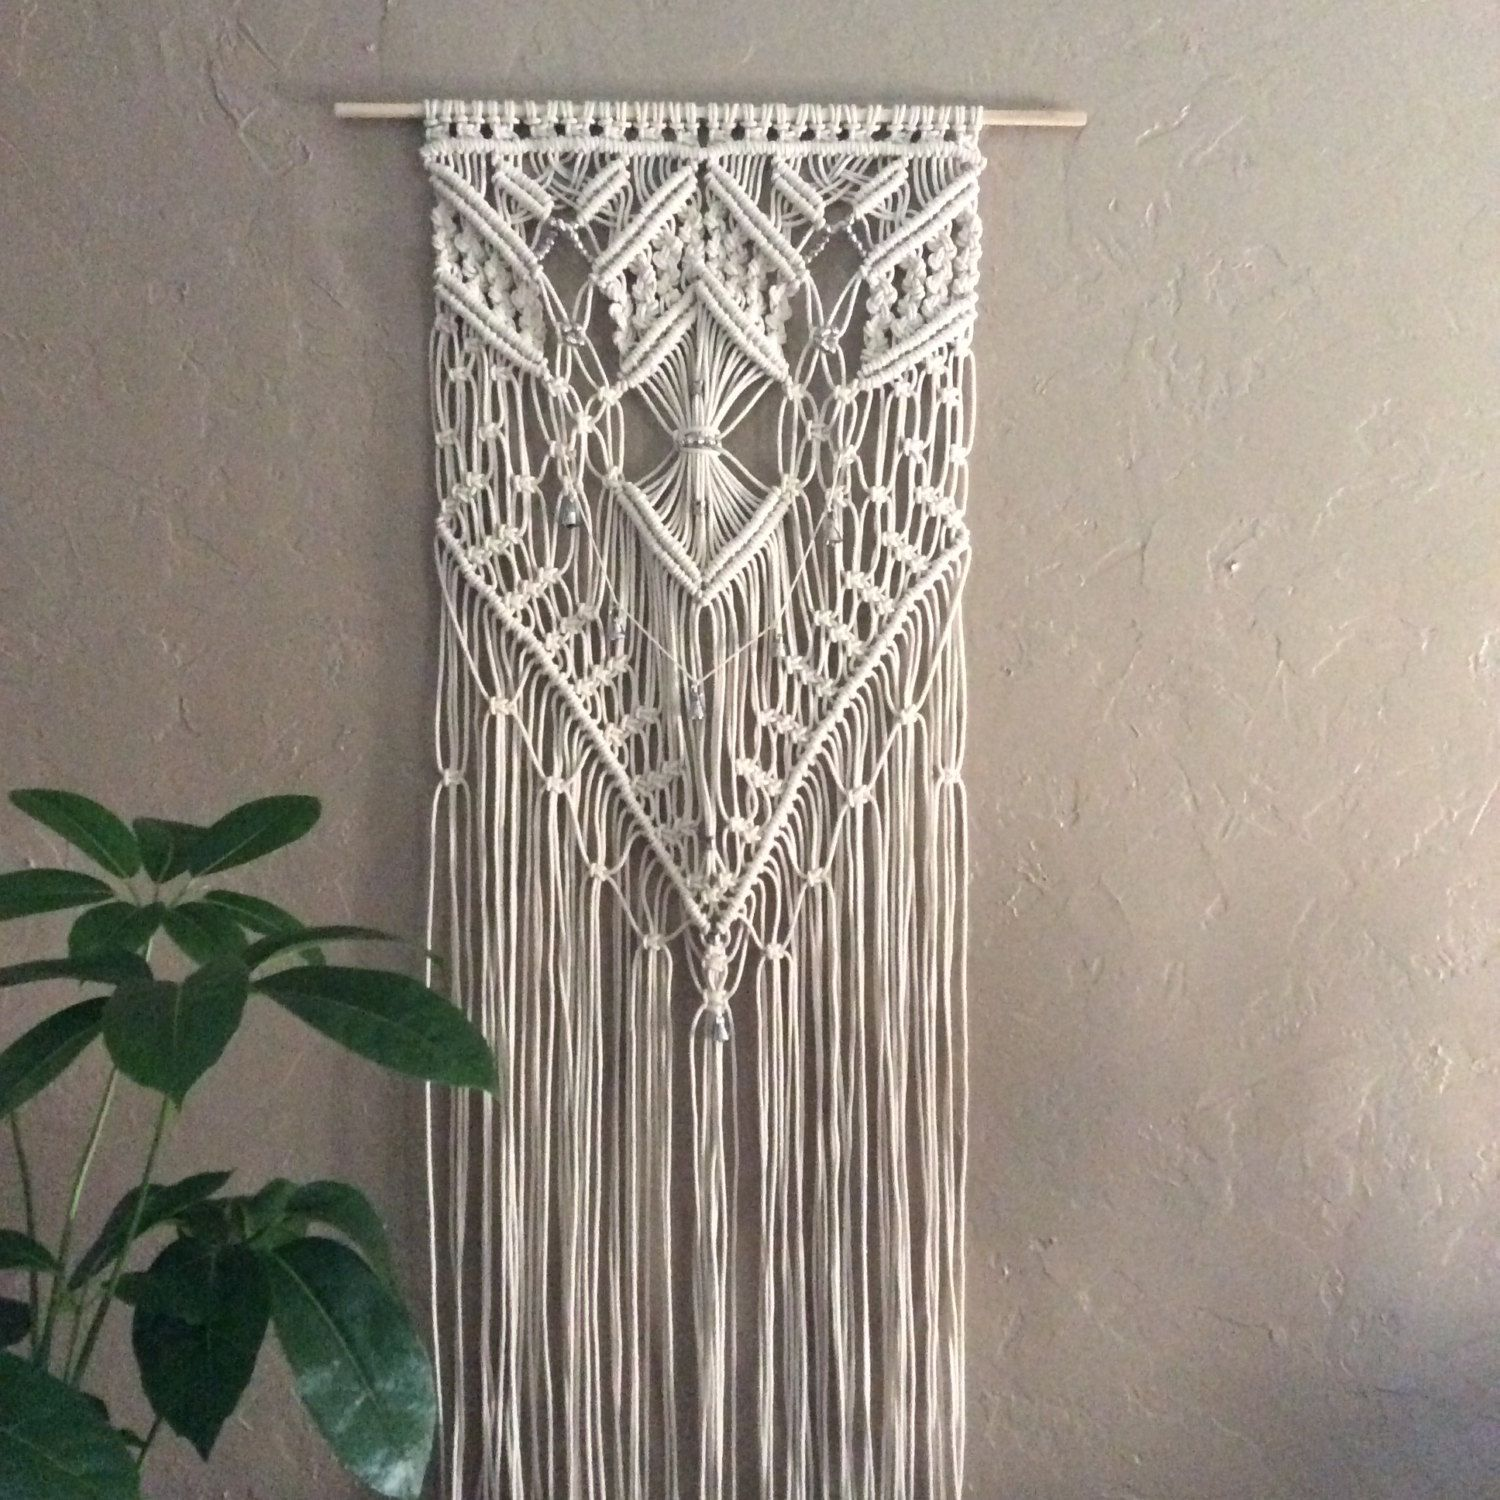 Large macrame wall hanging macrame boho wall decor garden art